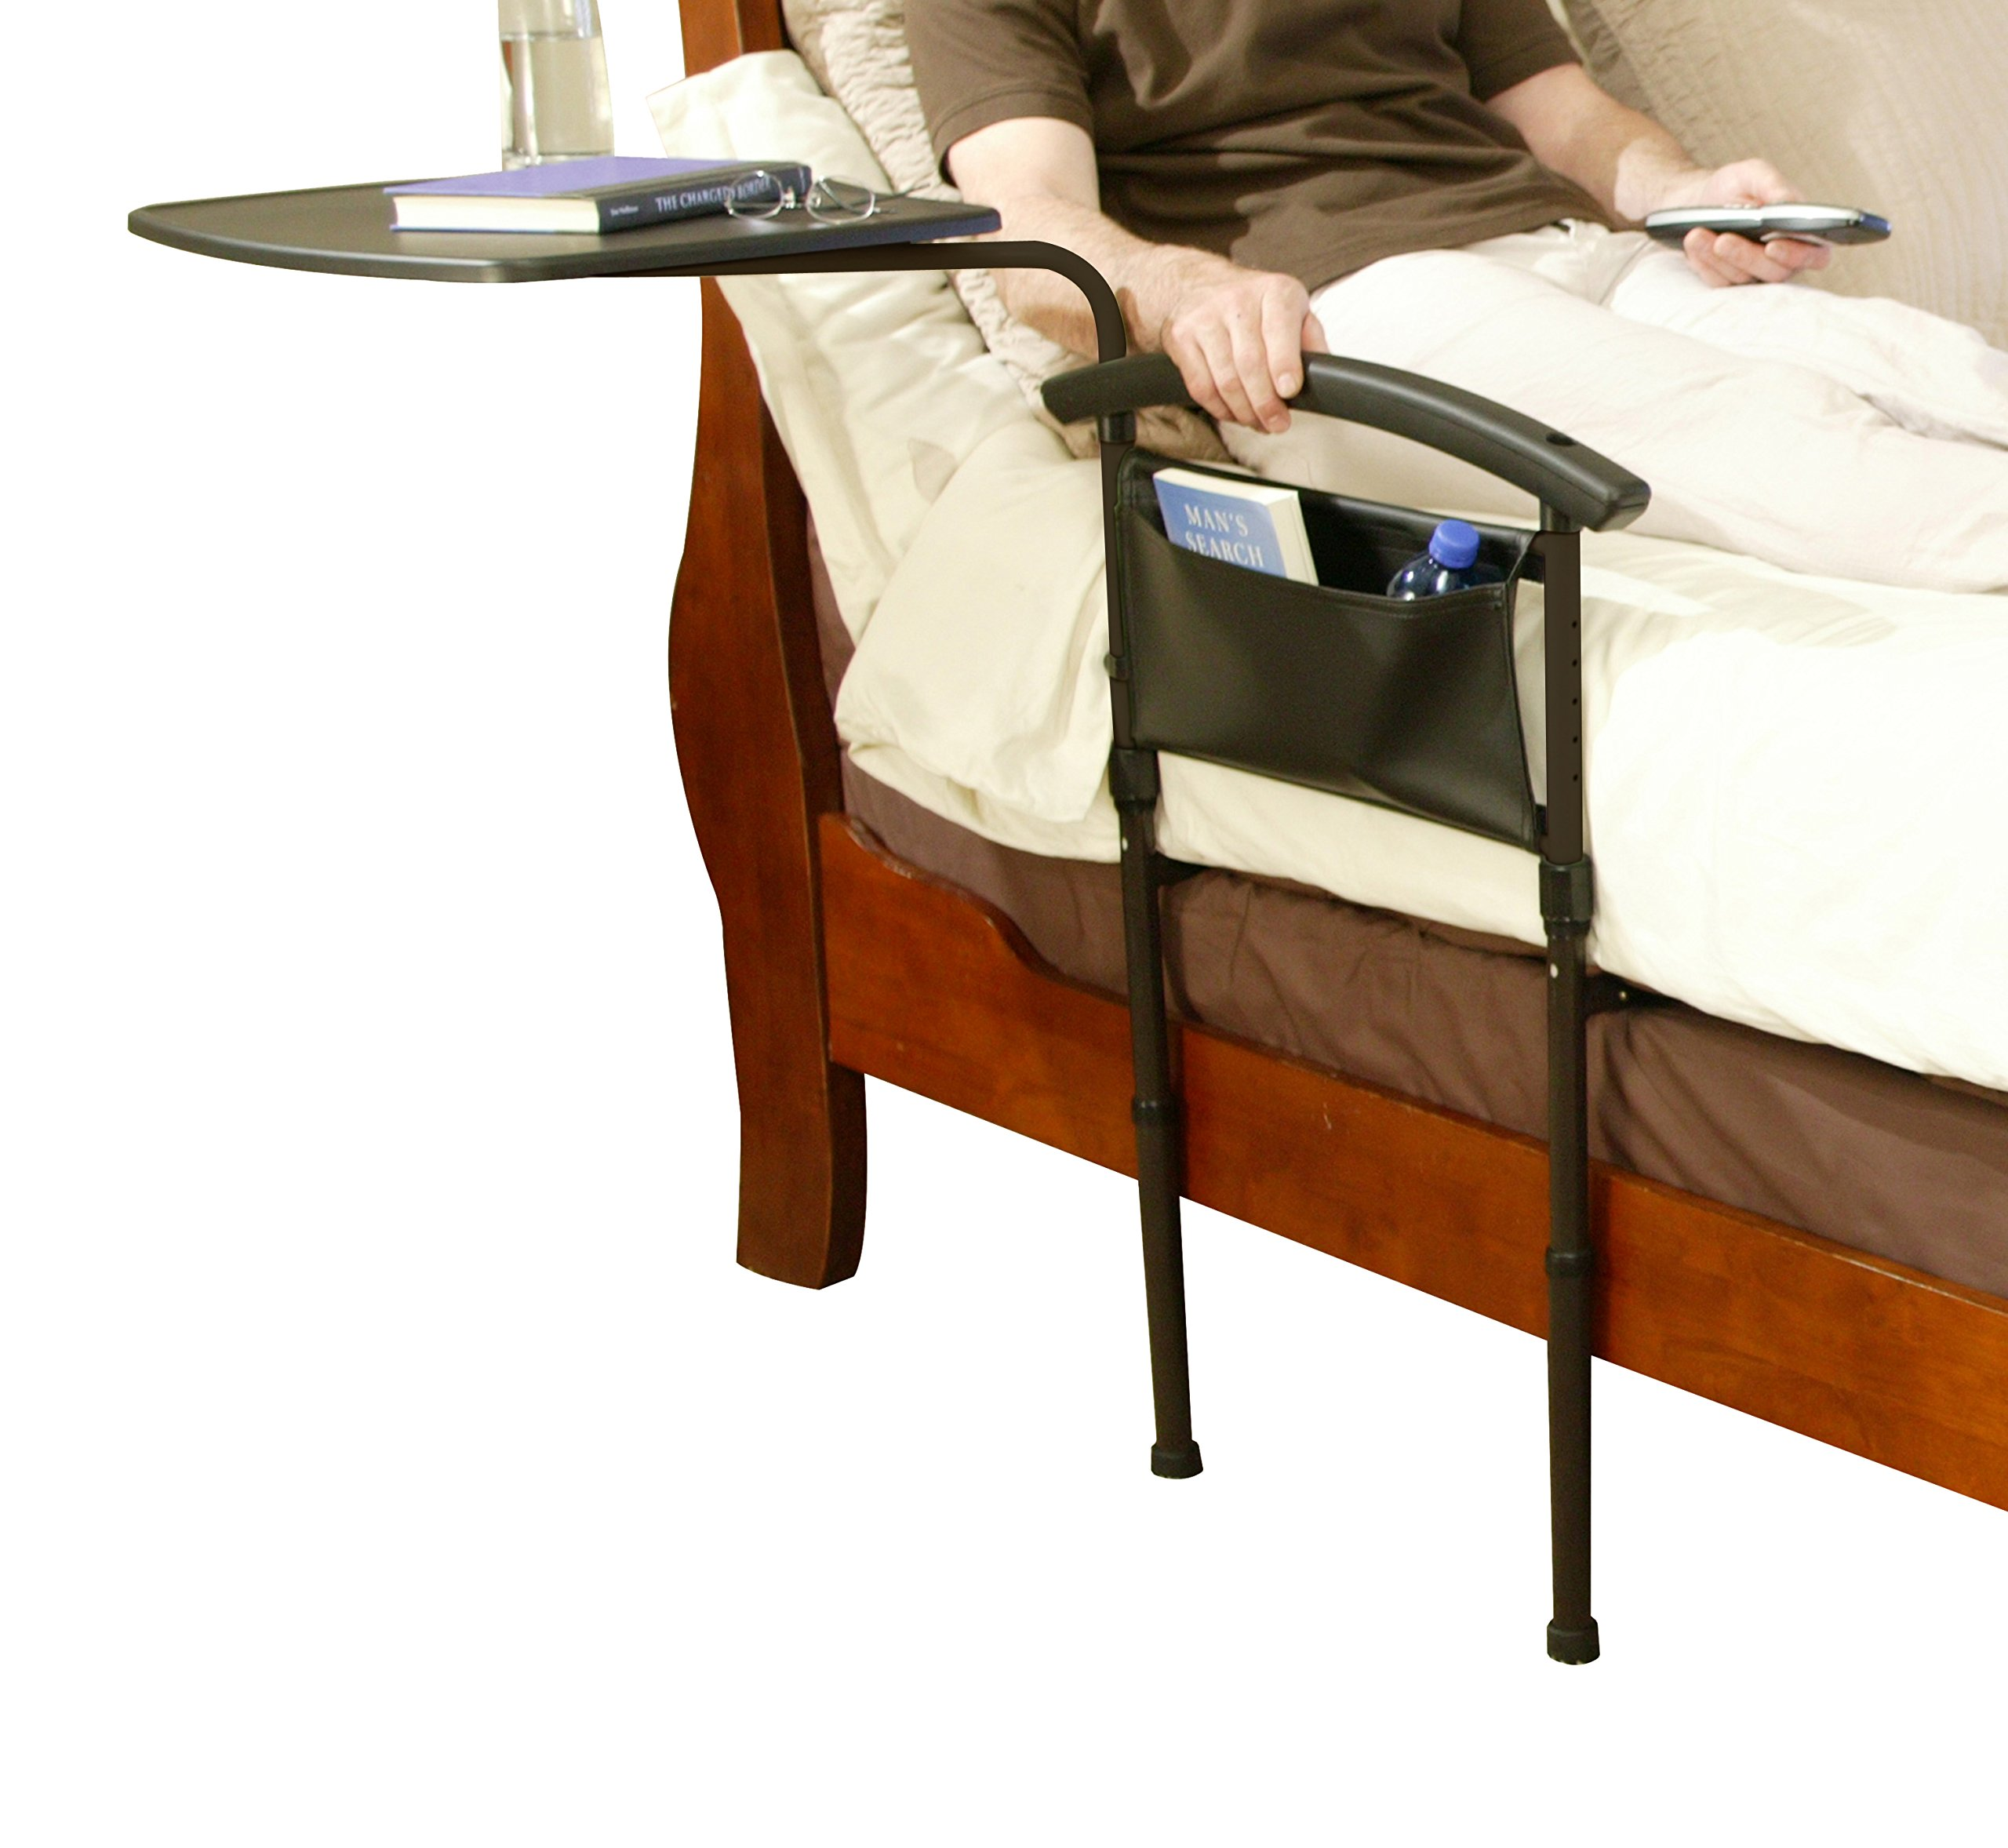 Stander Independence Bed Table - Home Adult Safety Bed Rail & Support Handle + Overbed Table Swivel Tray & Pouch by Stander